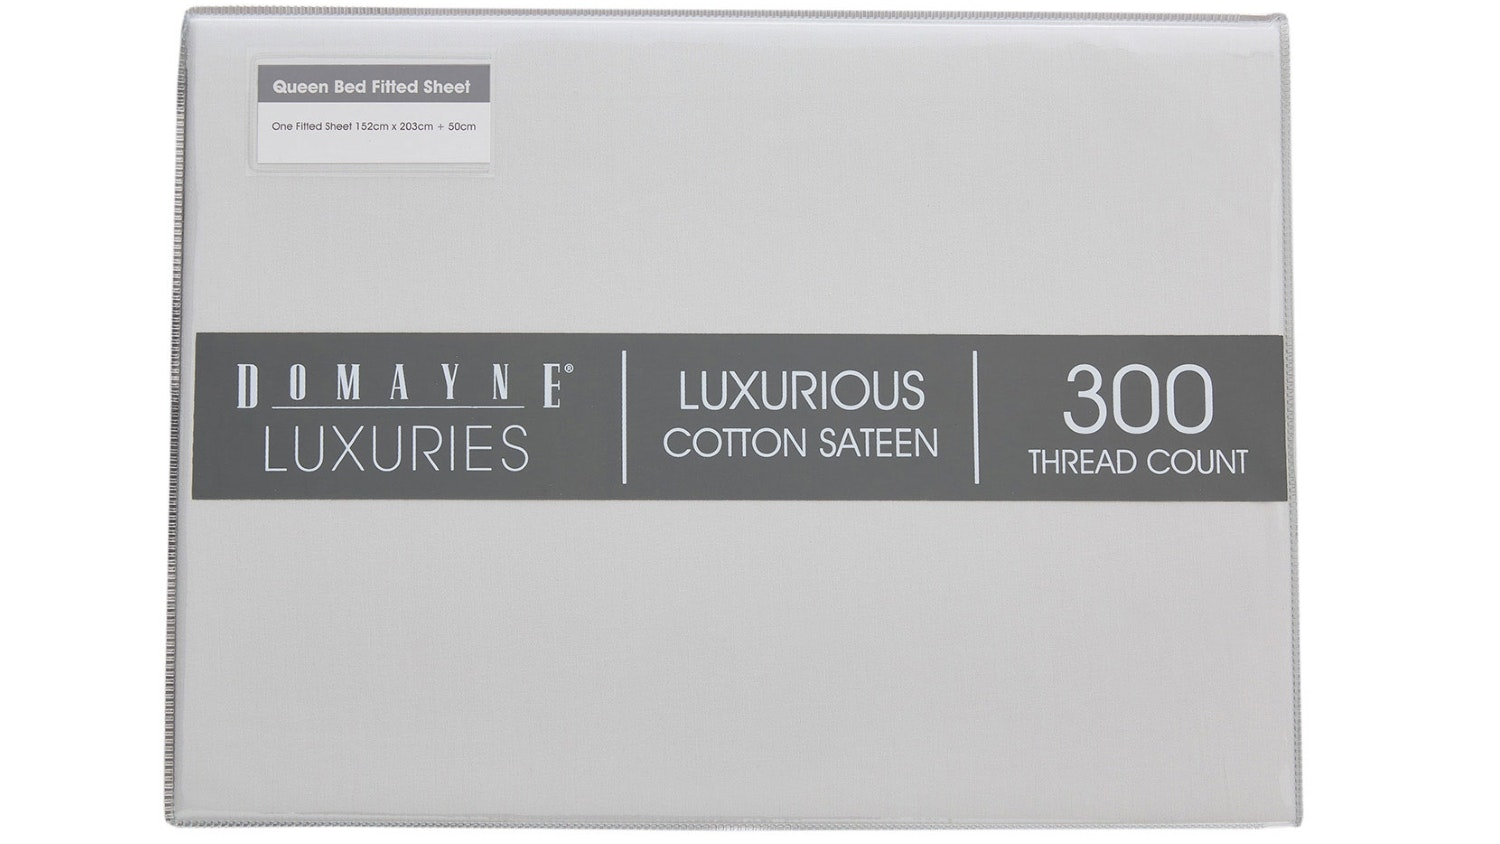 Domayne Luxuries 300TC Fitted Sheet - Silver